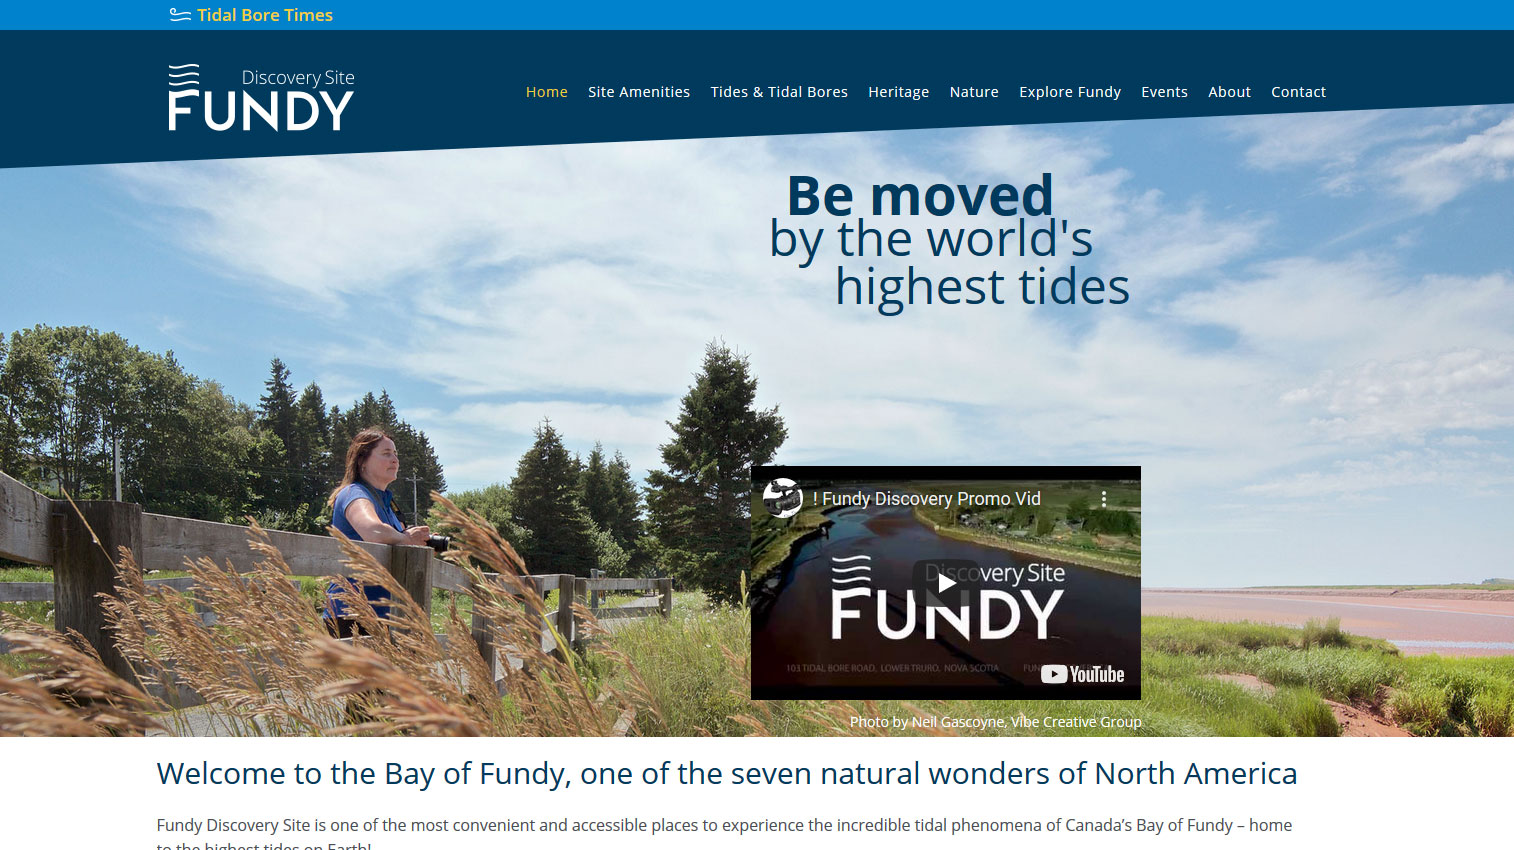 Fundy Discovery Site